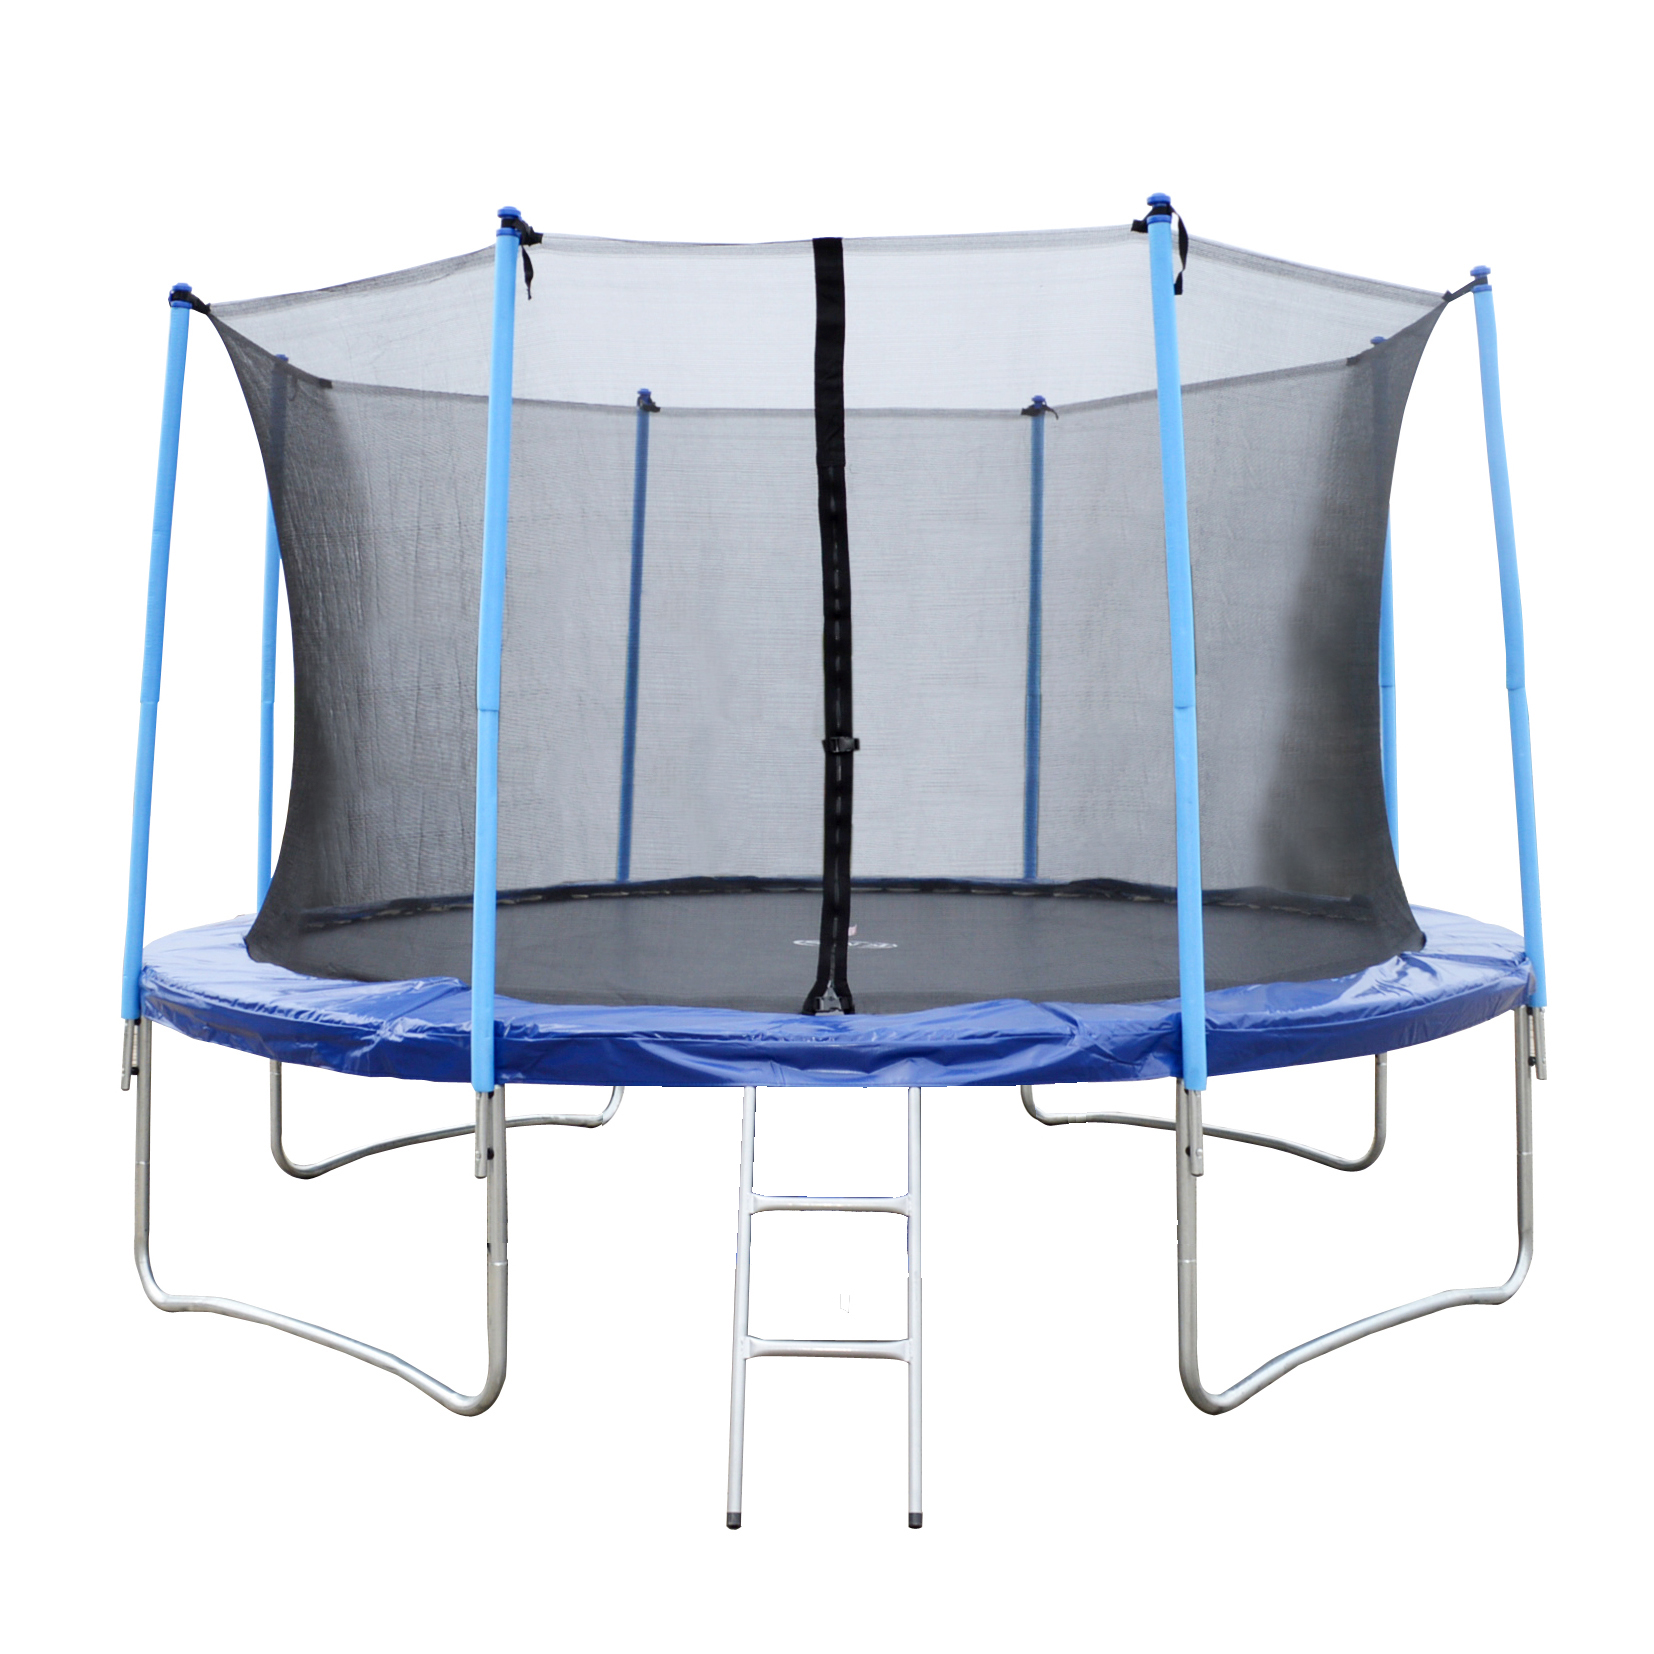 8FT 10FT 12FT 14FT 16FT Trampoline With Ladder Rain Cover